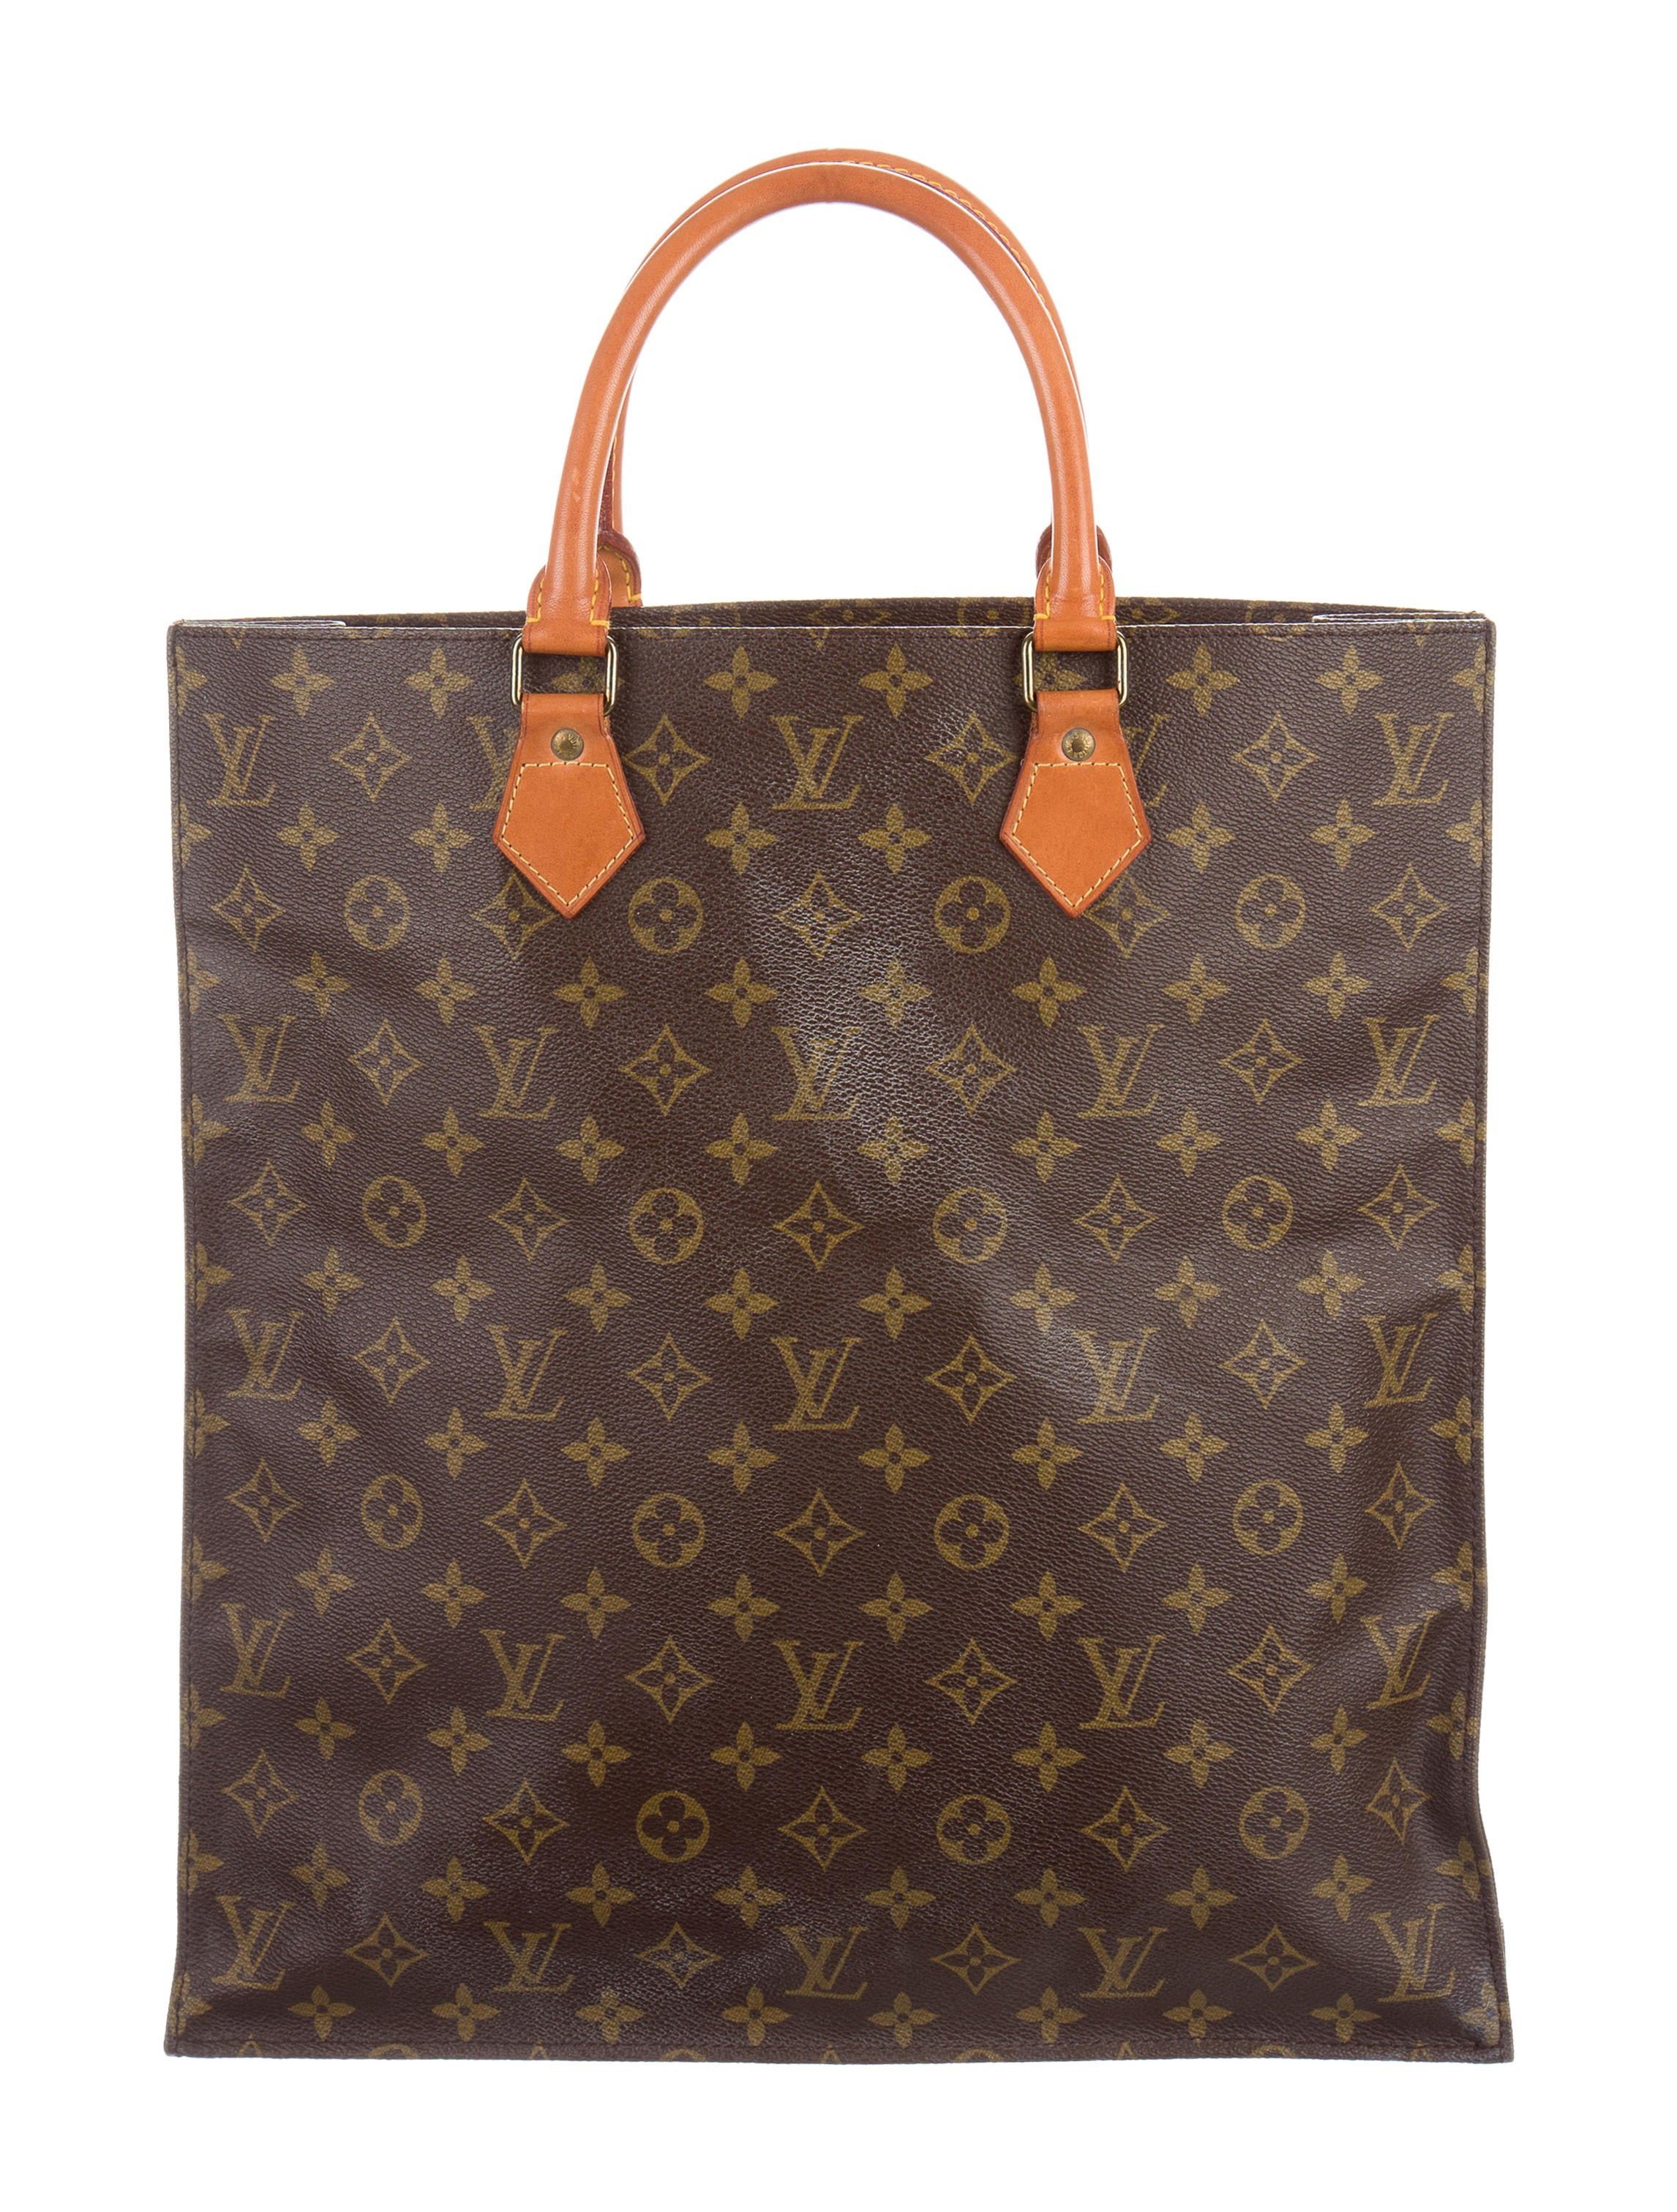 Louis vuitton monogram sac plat handbags lou141232 for Louis vuitton monogram miroir sac plat